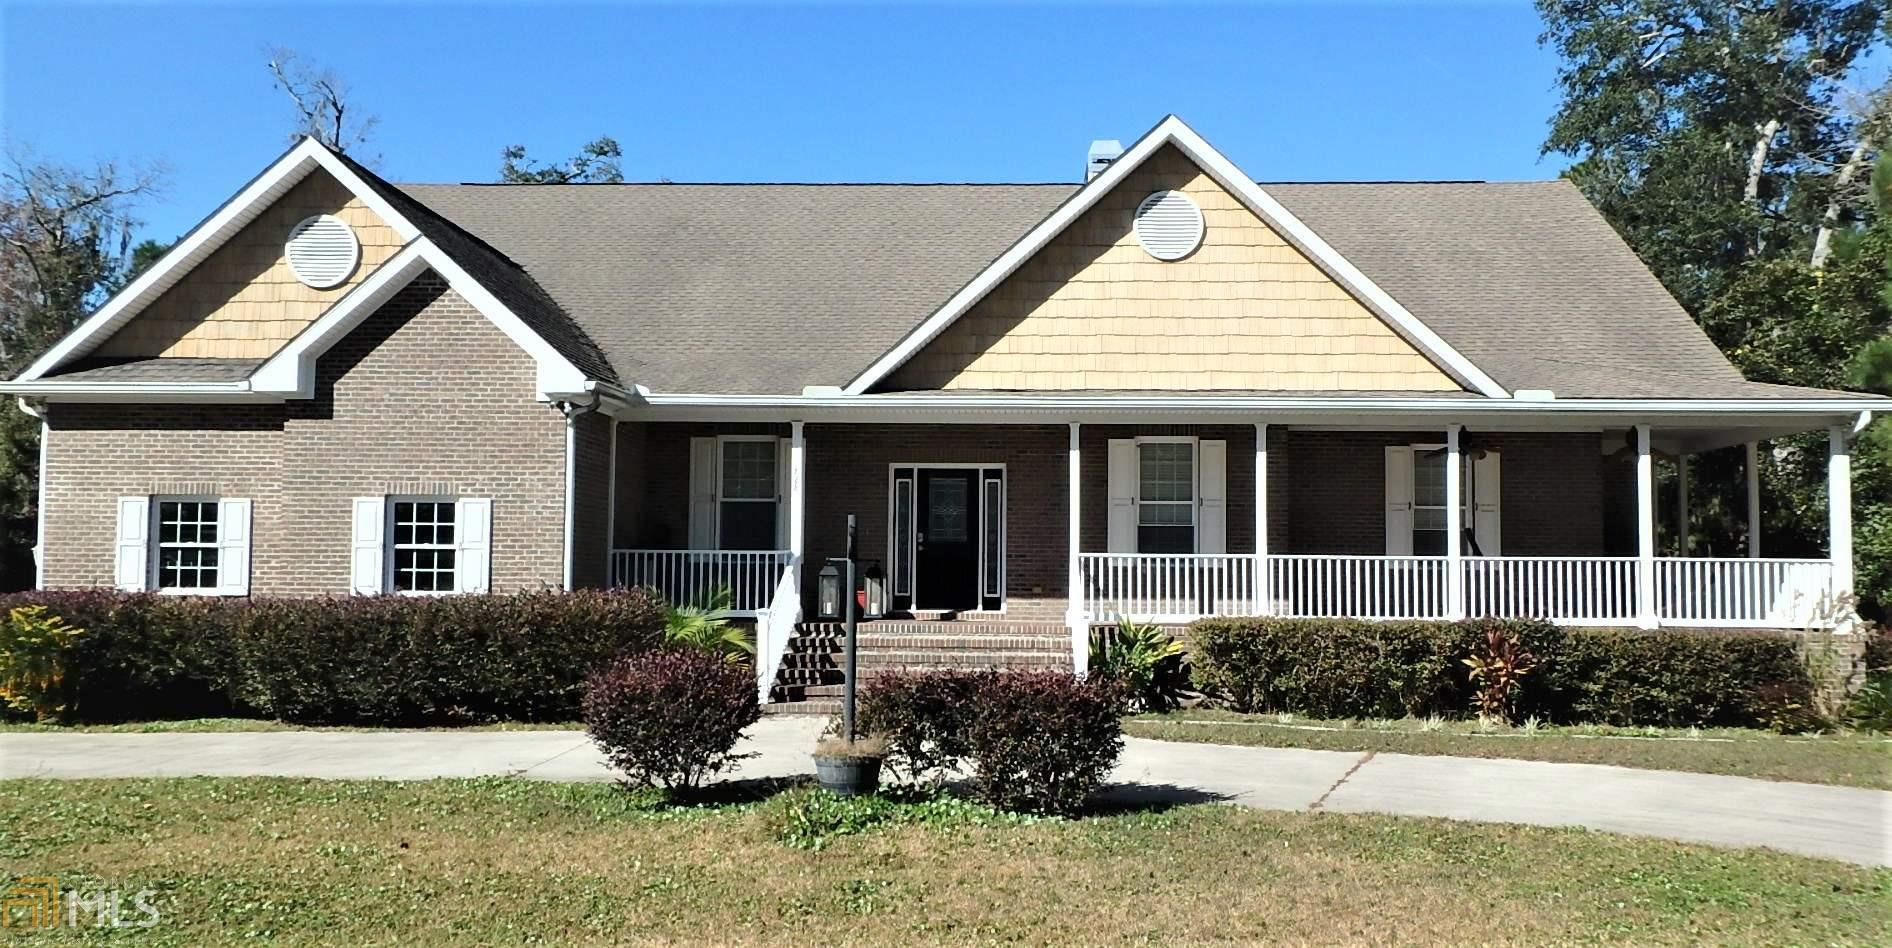 828 E Riverview Dr, Saint Marys, GA 31558 - MLS#: 8900639